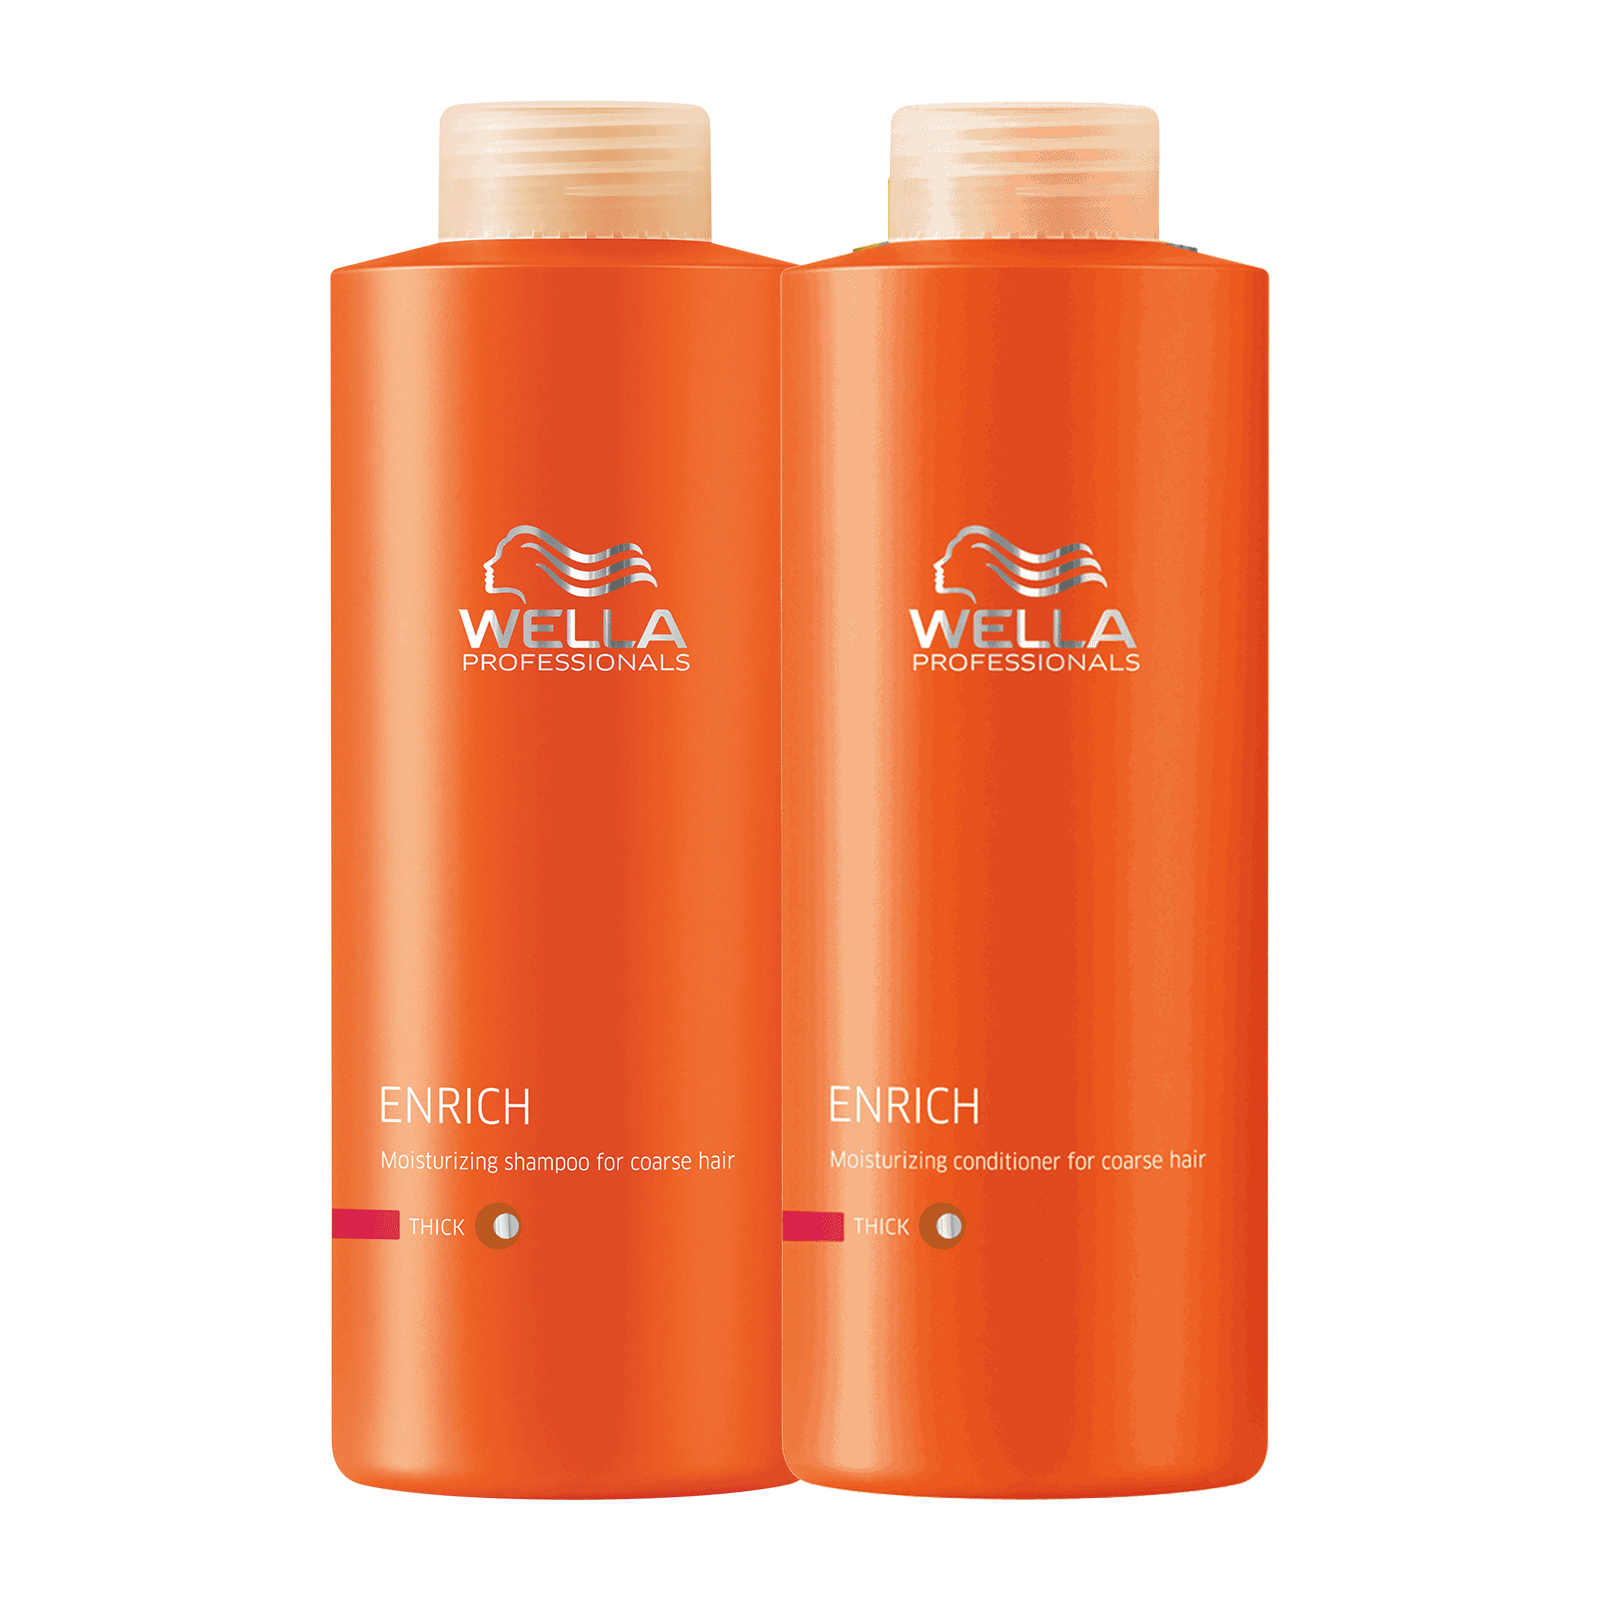 Enrich Shampoo, Conditioner for Coarse Hair Liter Duo